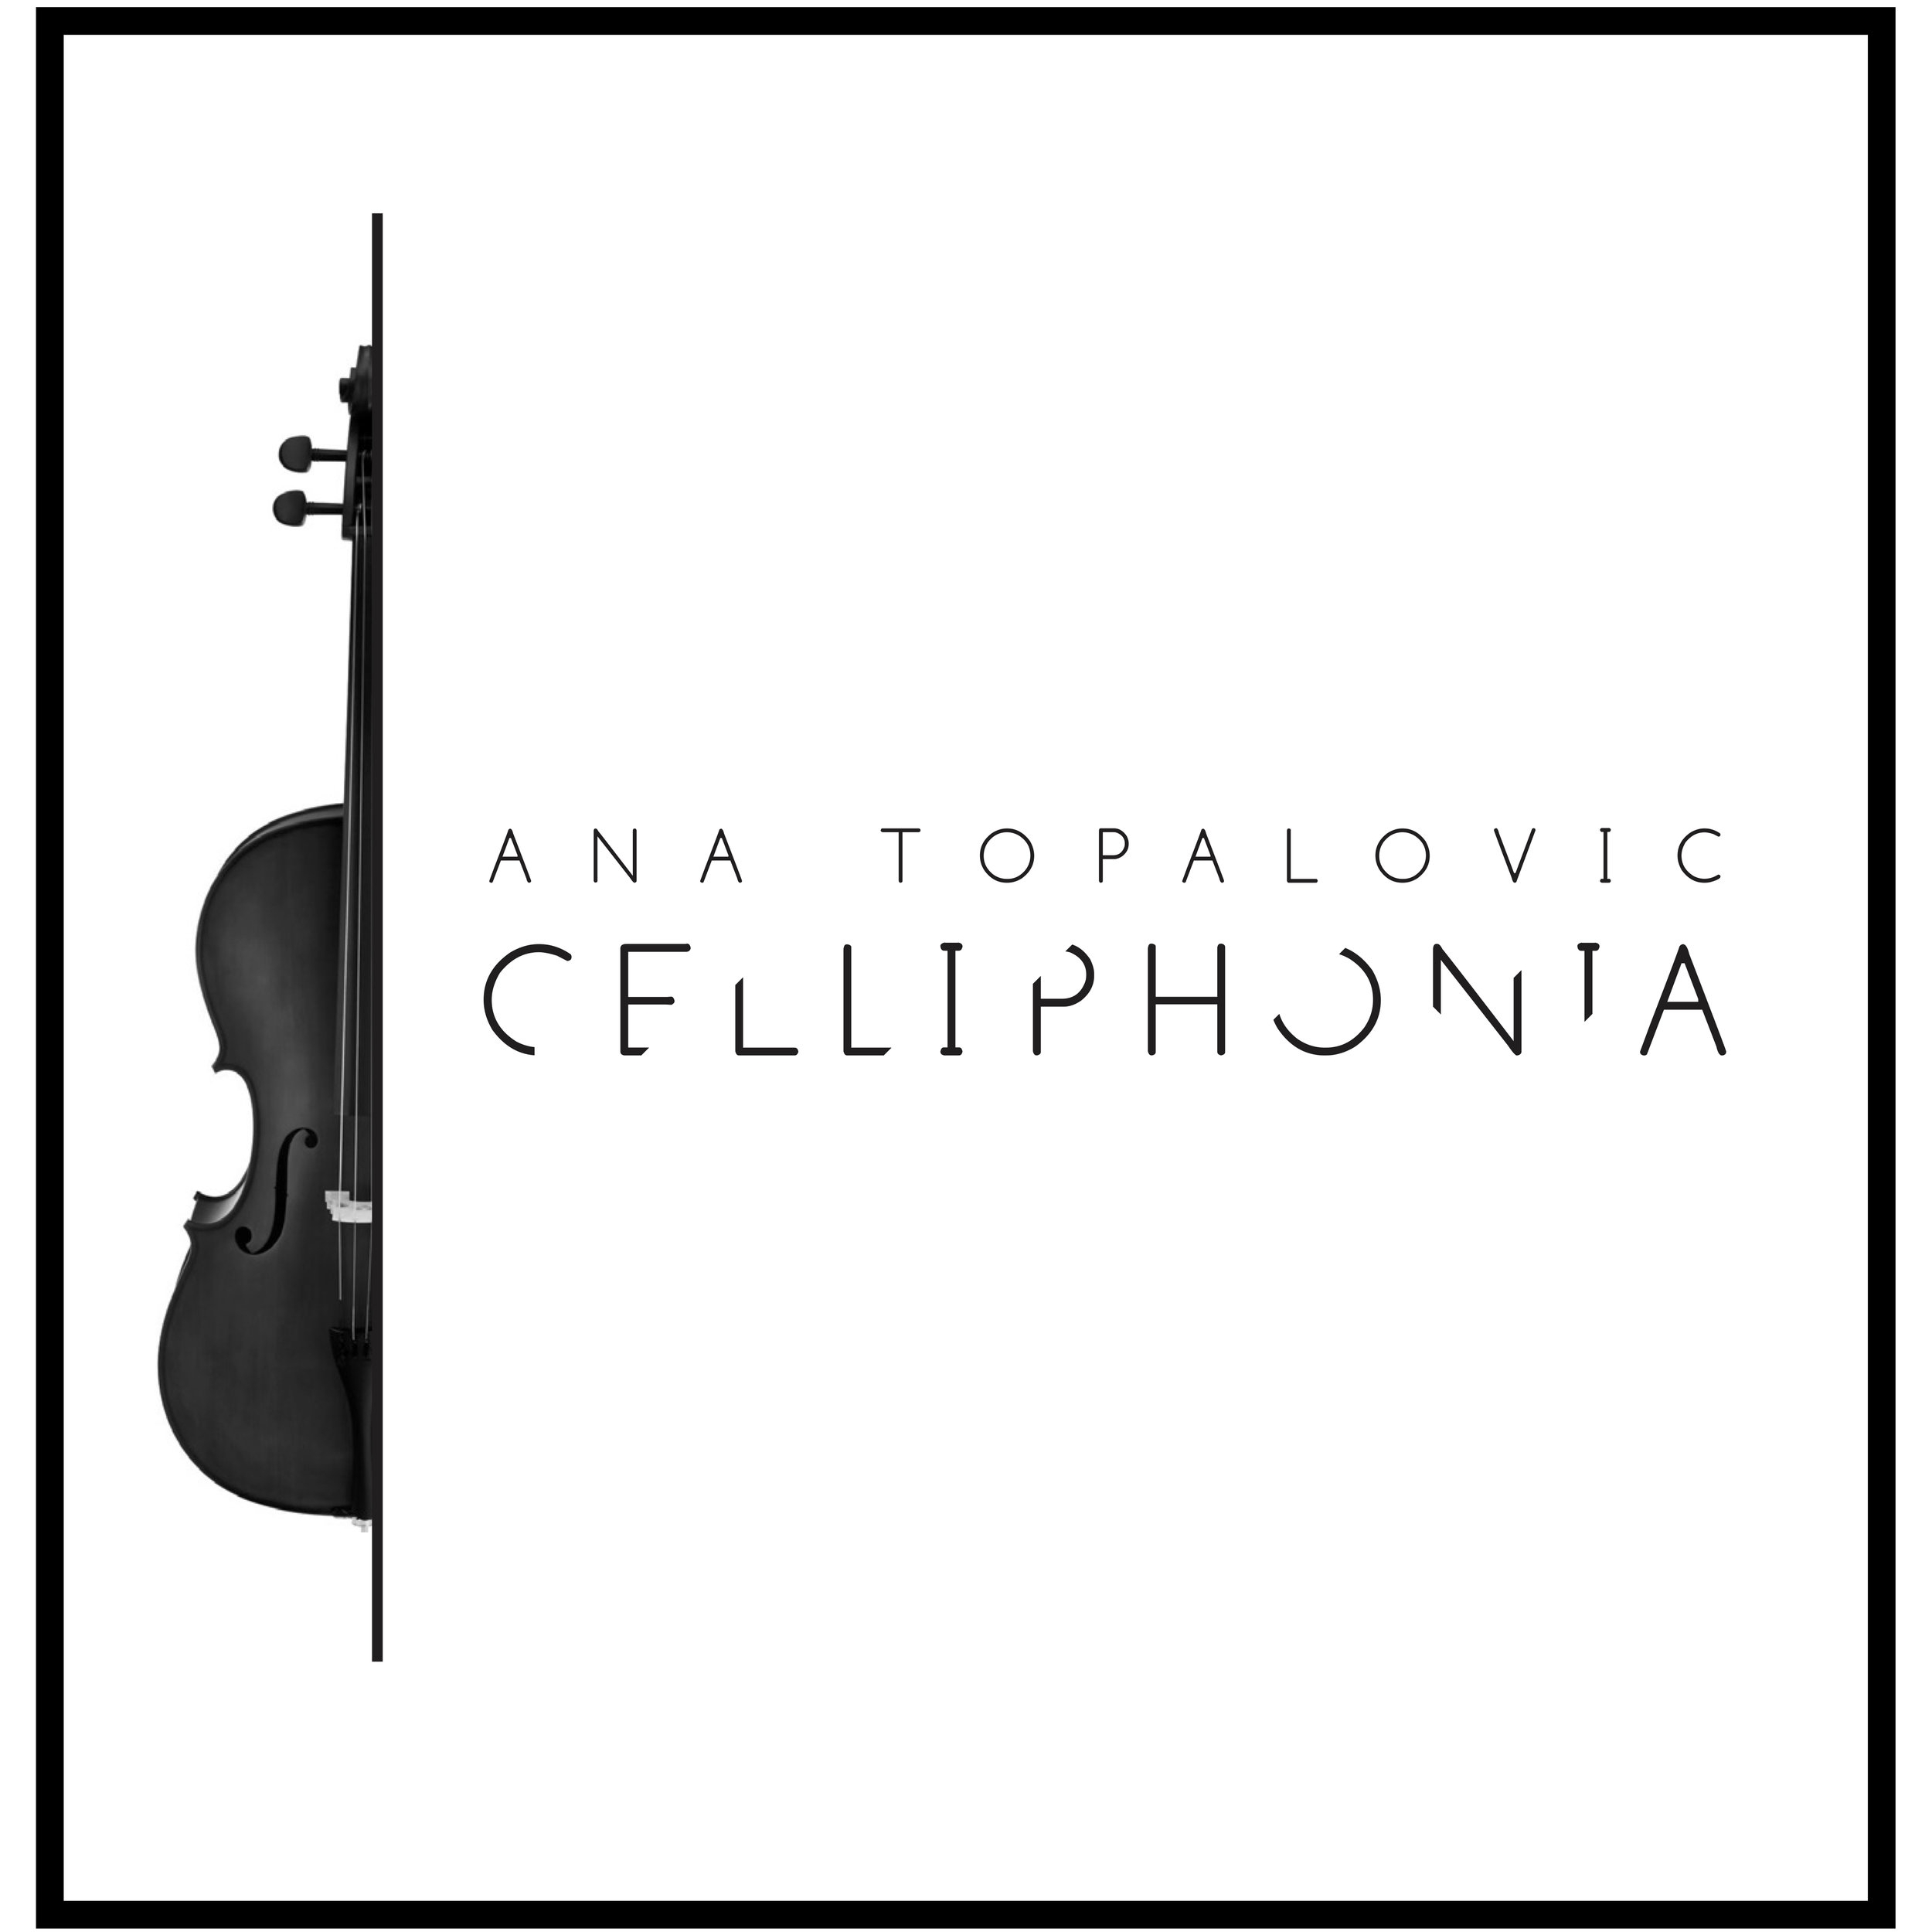 celliphonia -